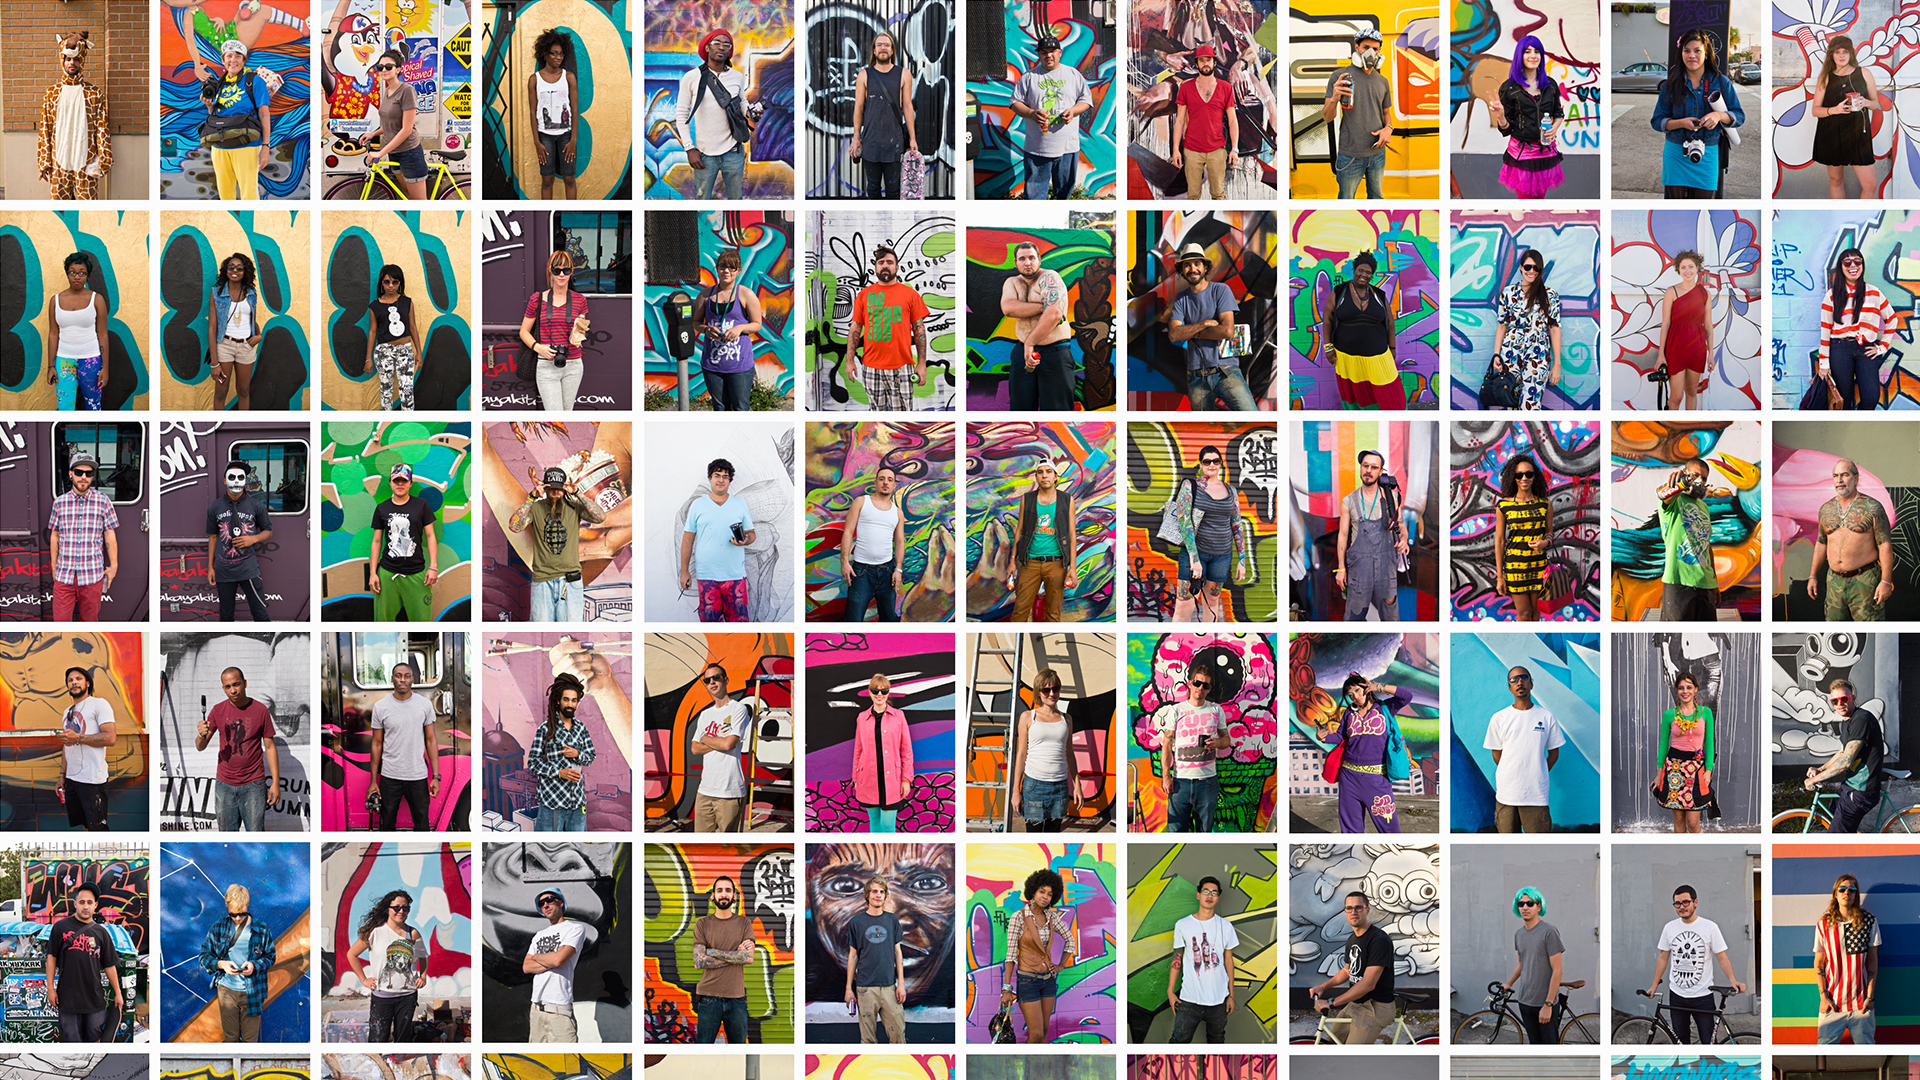 A selection of The Art Basel Street Portrait series. Click on the images to visit my portfolio.